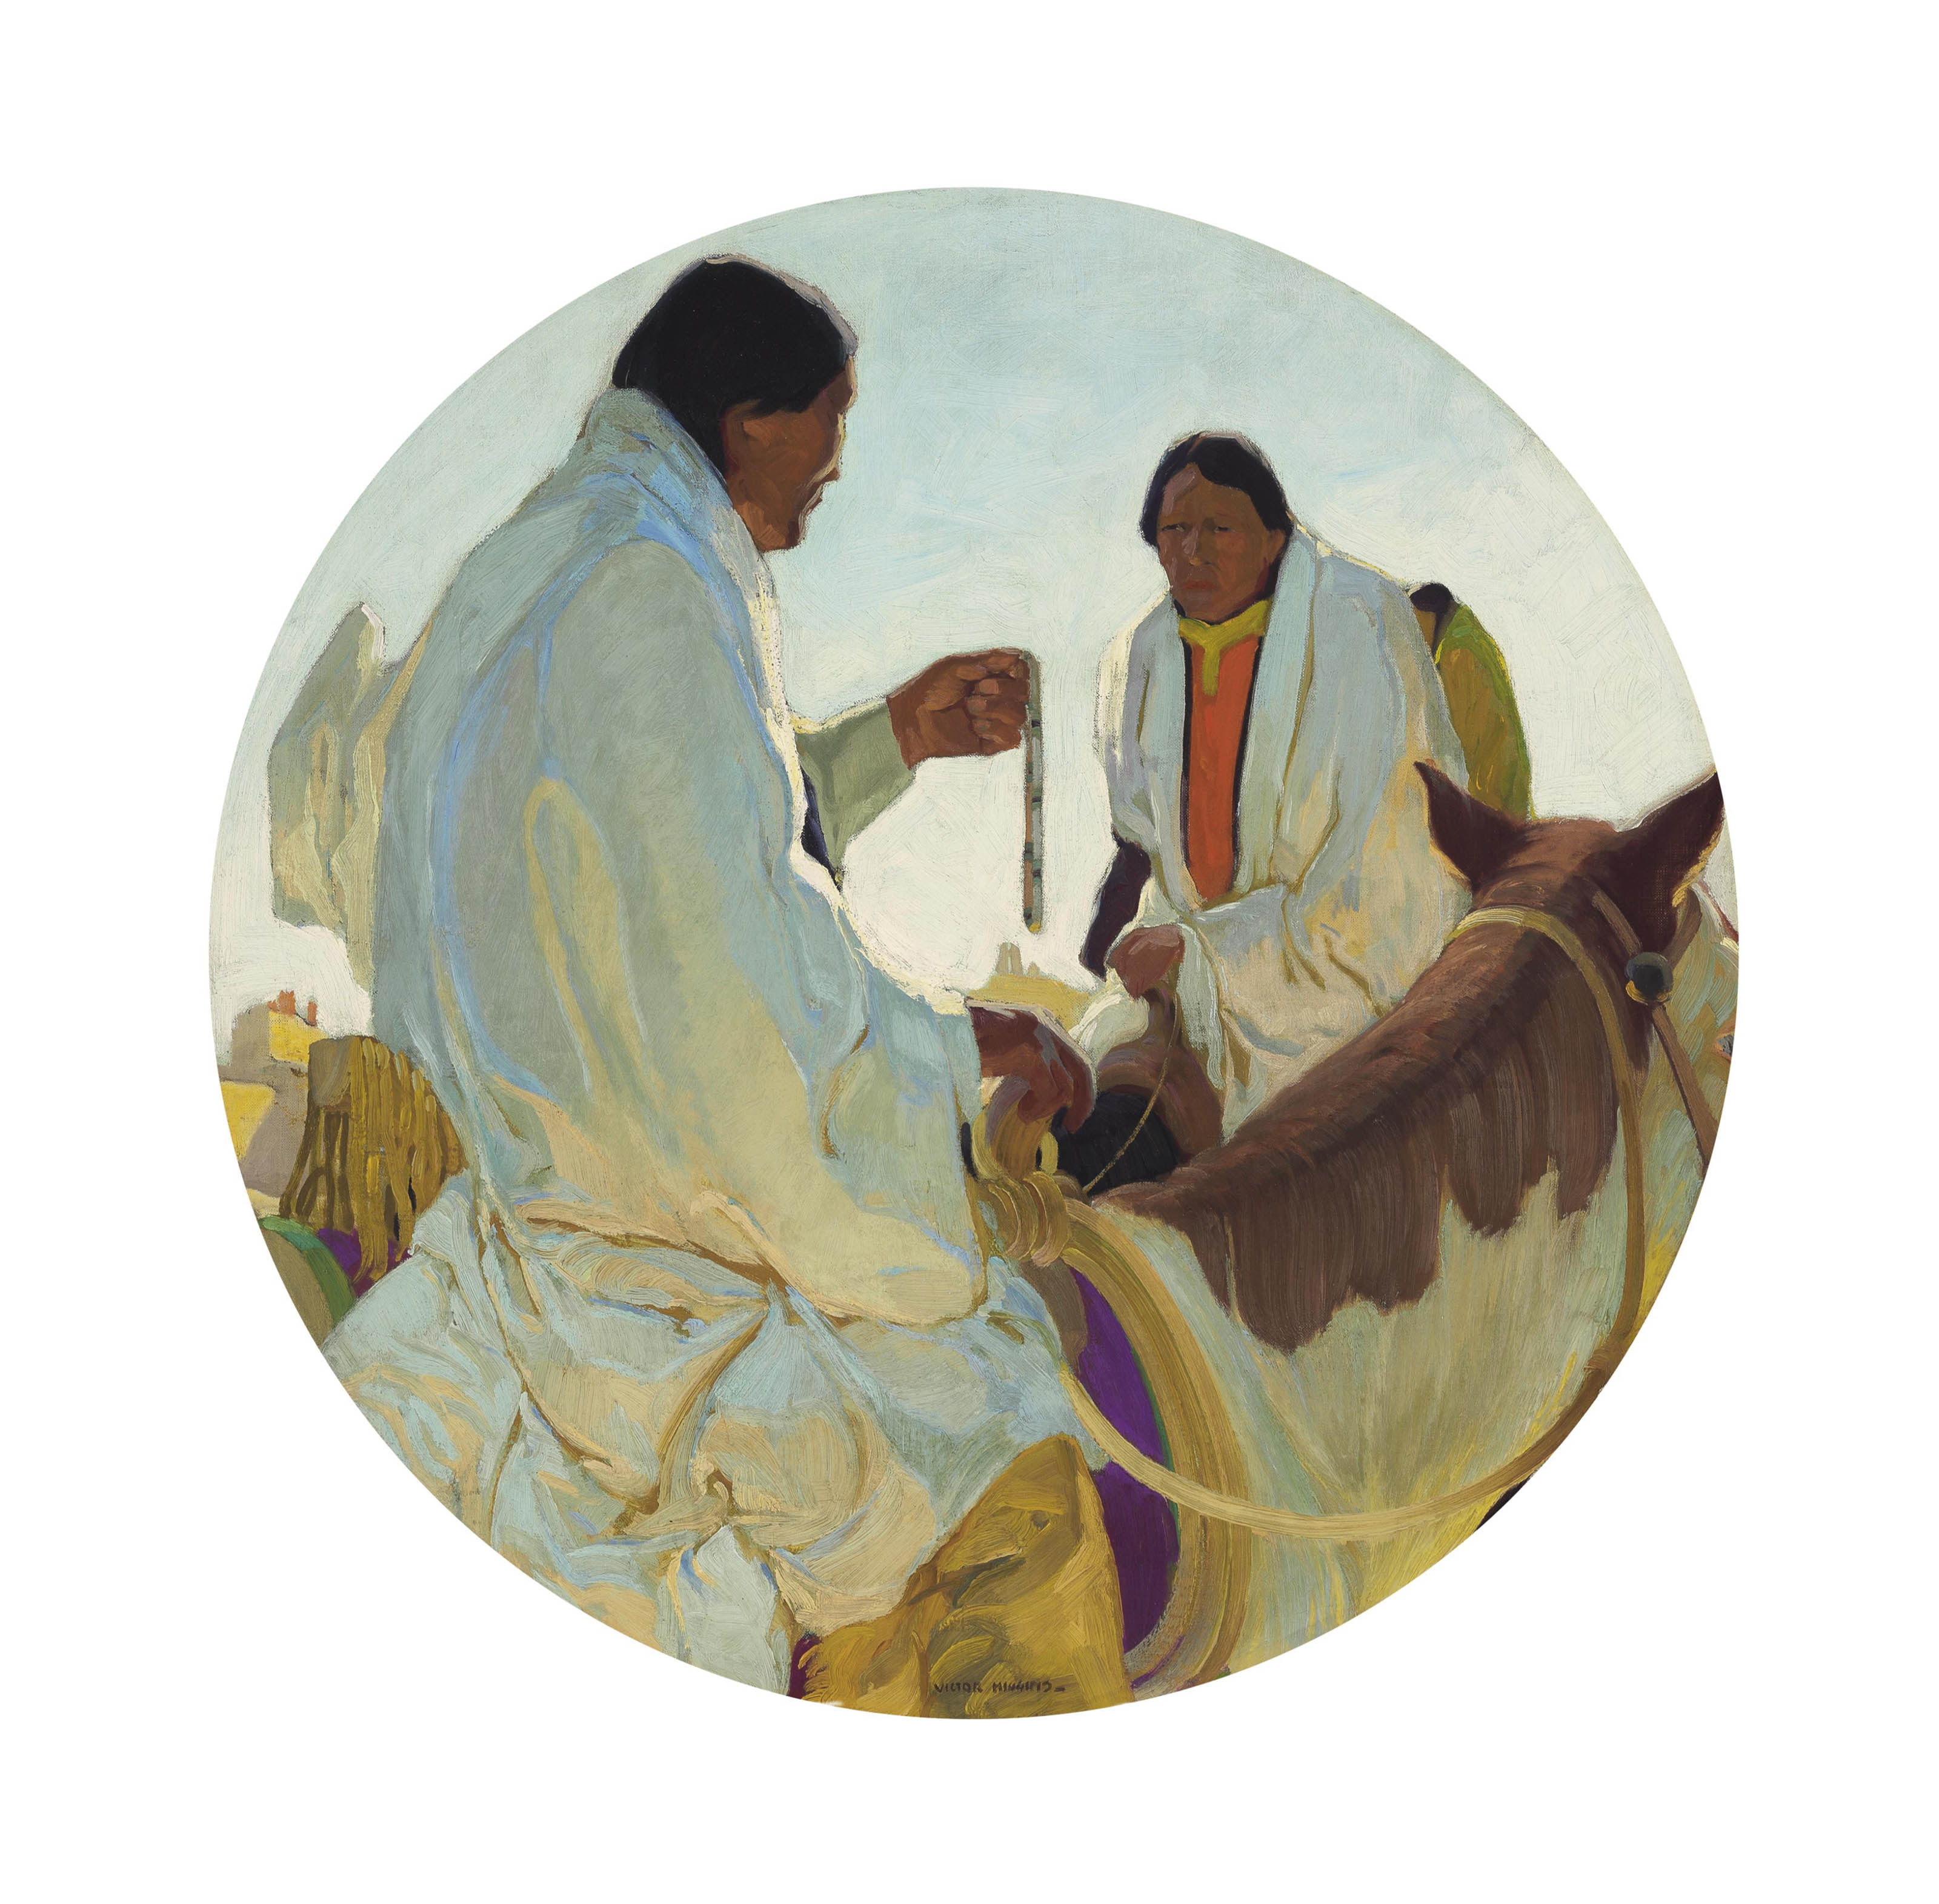 The Wampum Traders